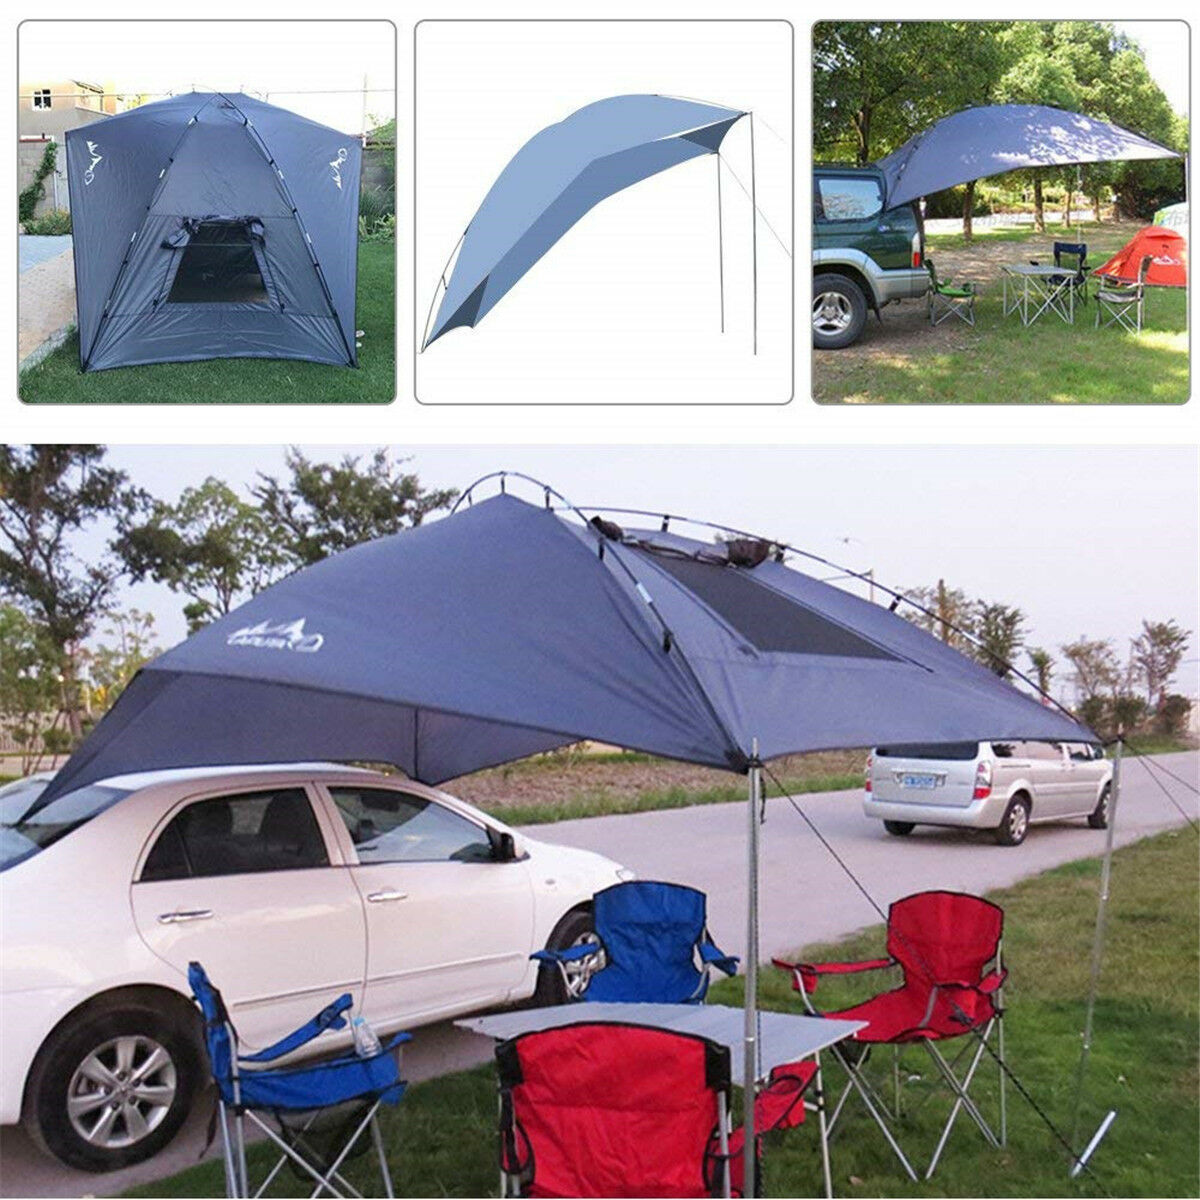 Waterproof Trailer Awning Car SUV Roof Tent Sun Shelter Durable Camping Canopy